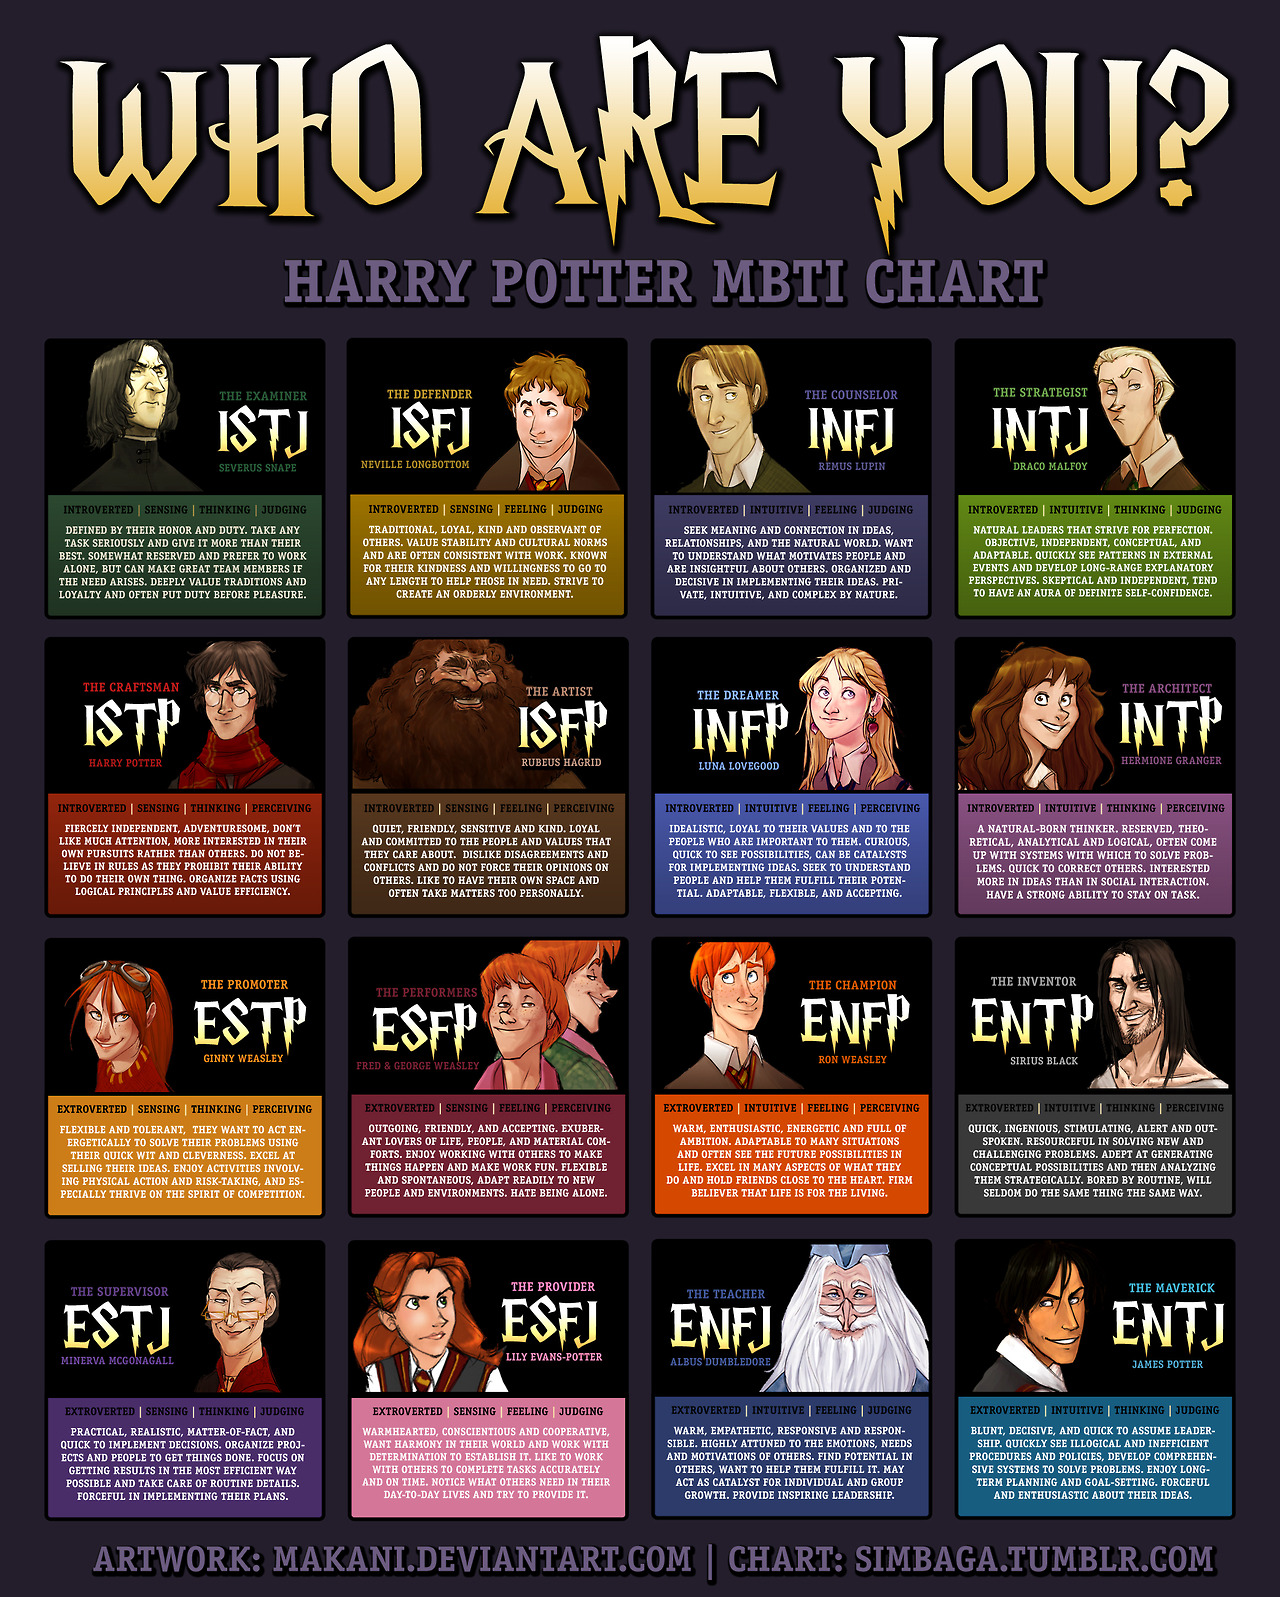 Harry+Potter+MBTI.jpg